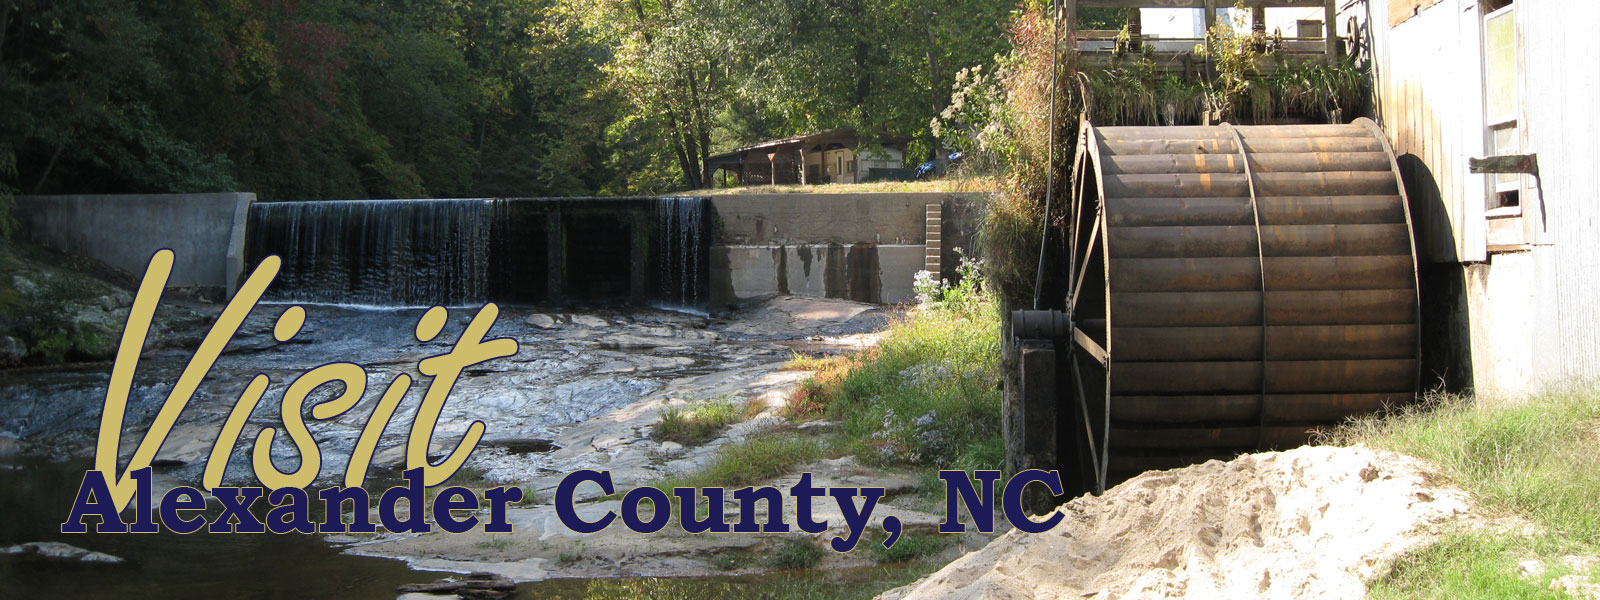 Visit Alexander County, NC